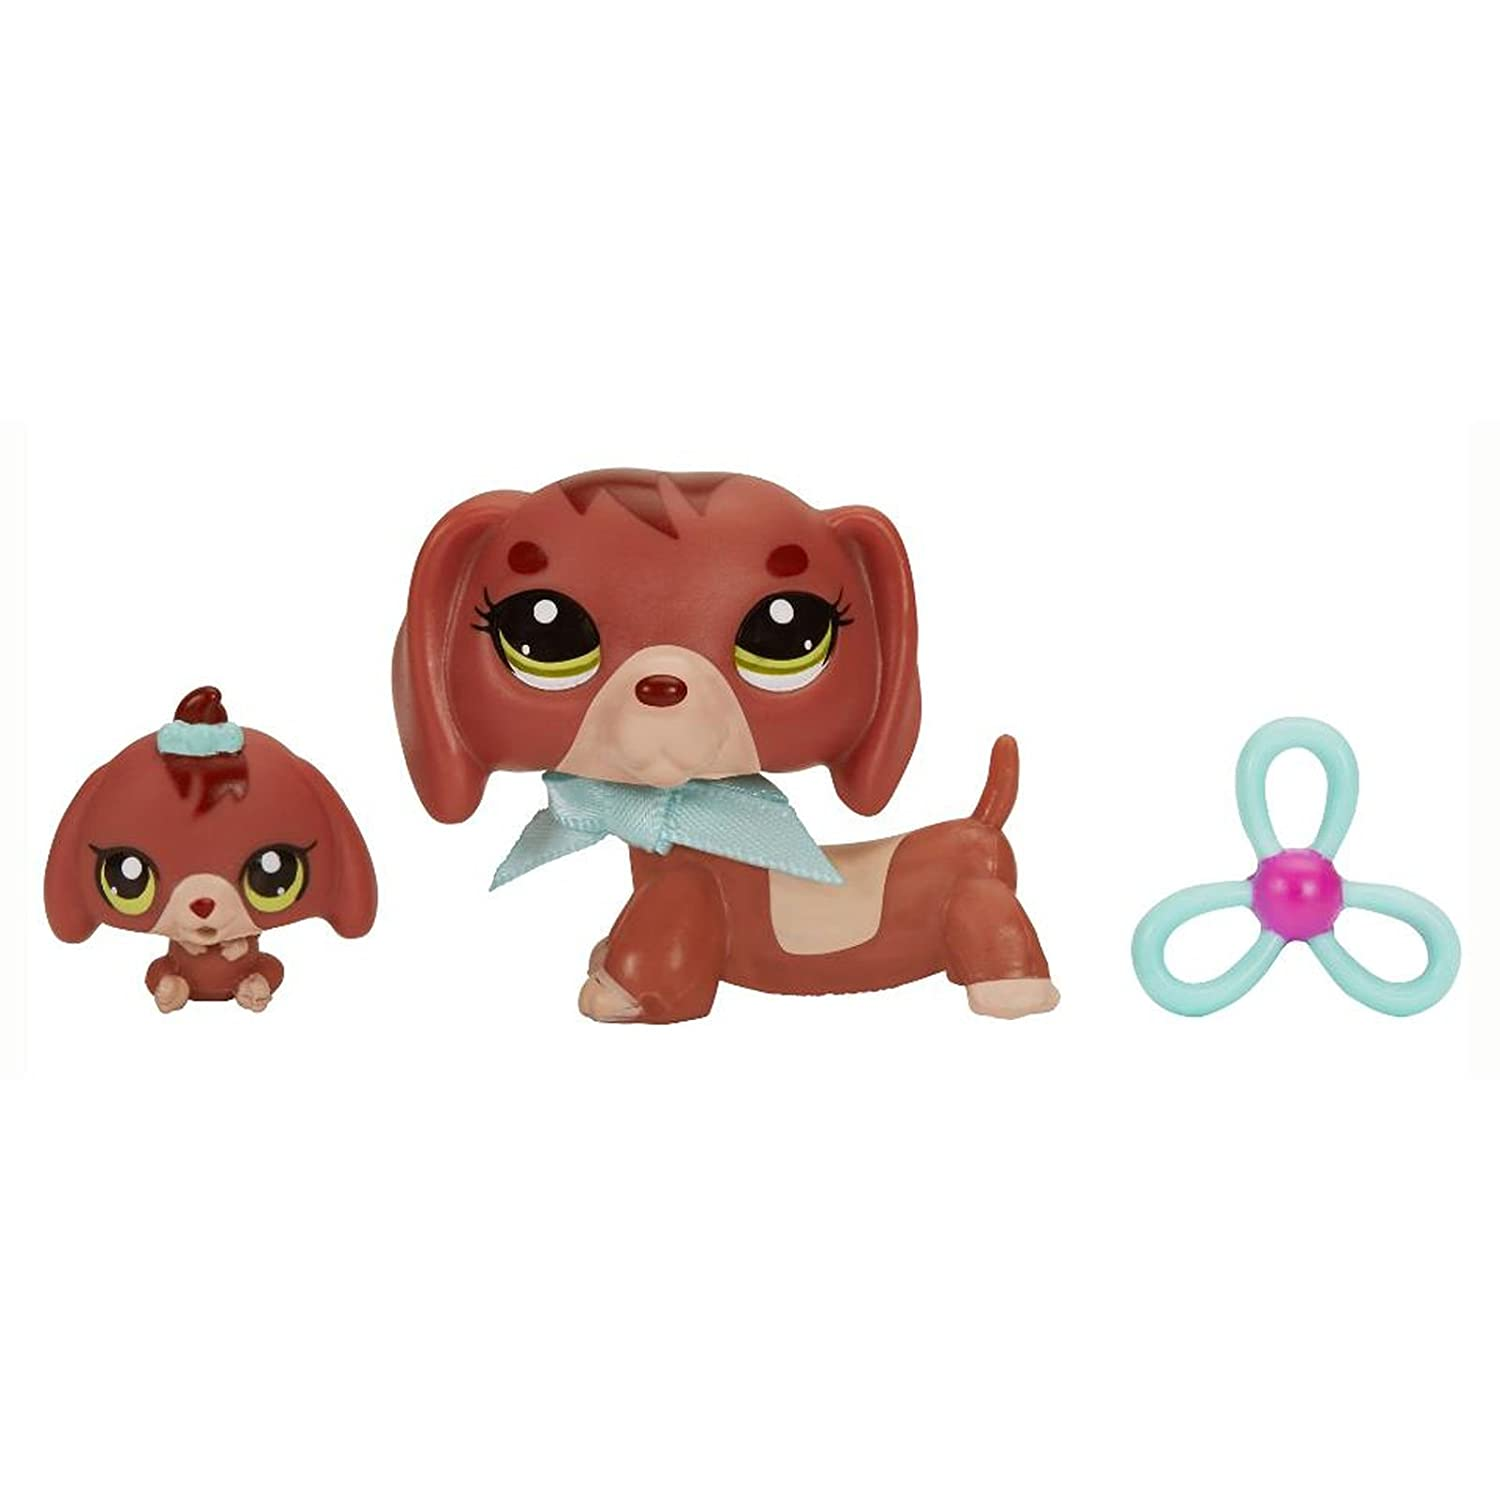 Amazoncom Hasbro Littlest Pet Shop Lps Dachshund Dog Baby Figure